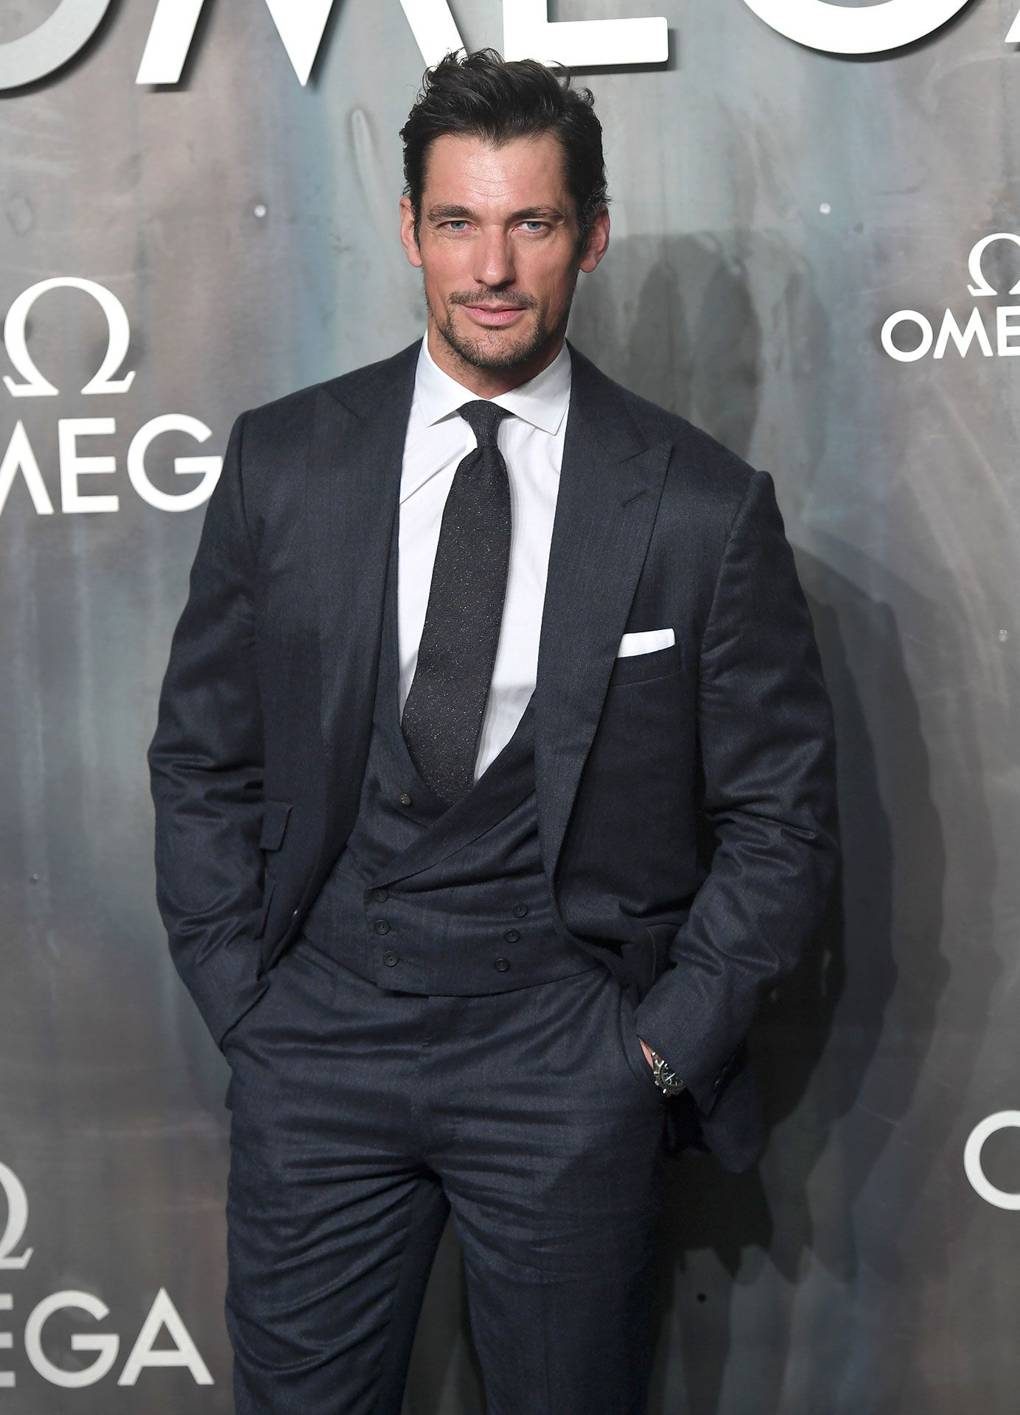 Gandy Vogue DaysBritish Extra Work These To Why David Hard Has QxrdthBsC